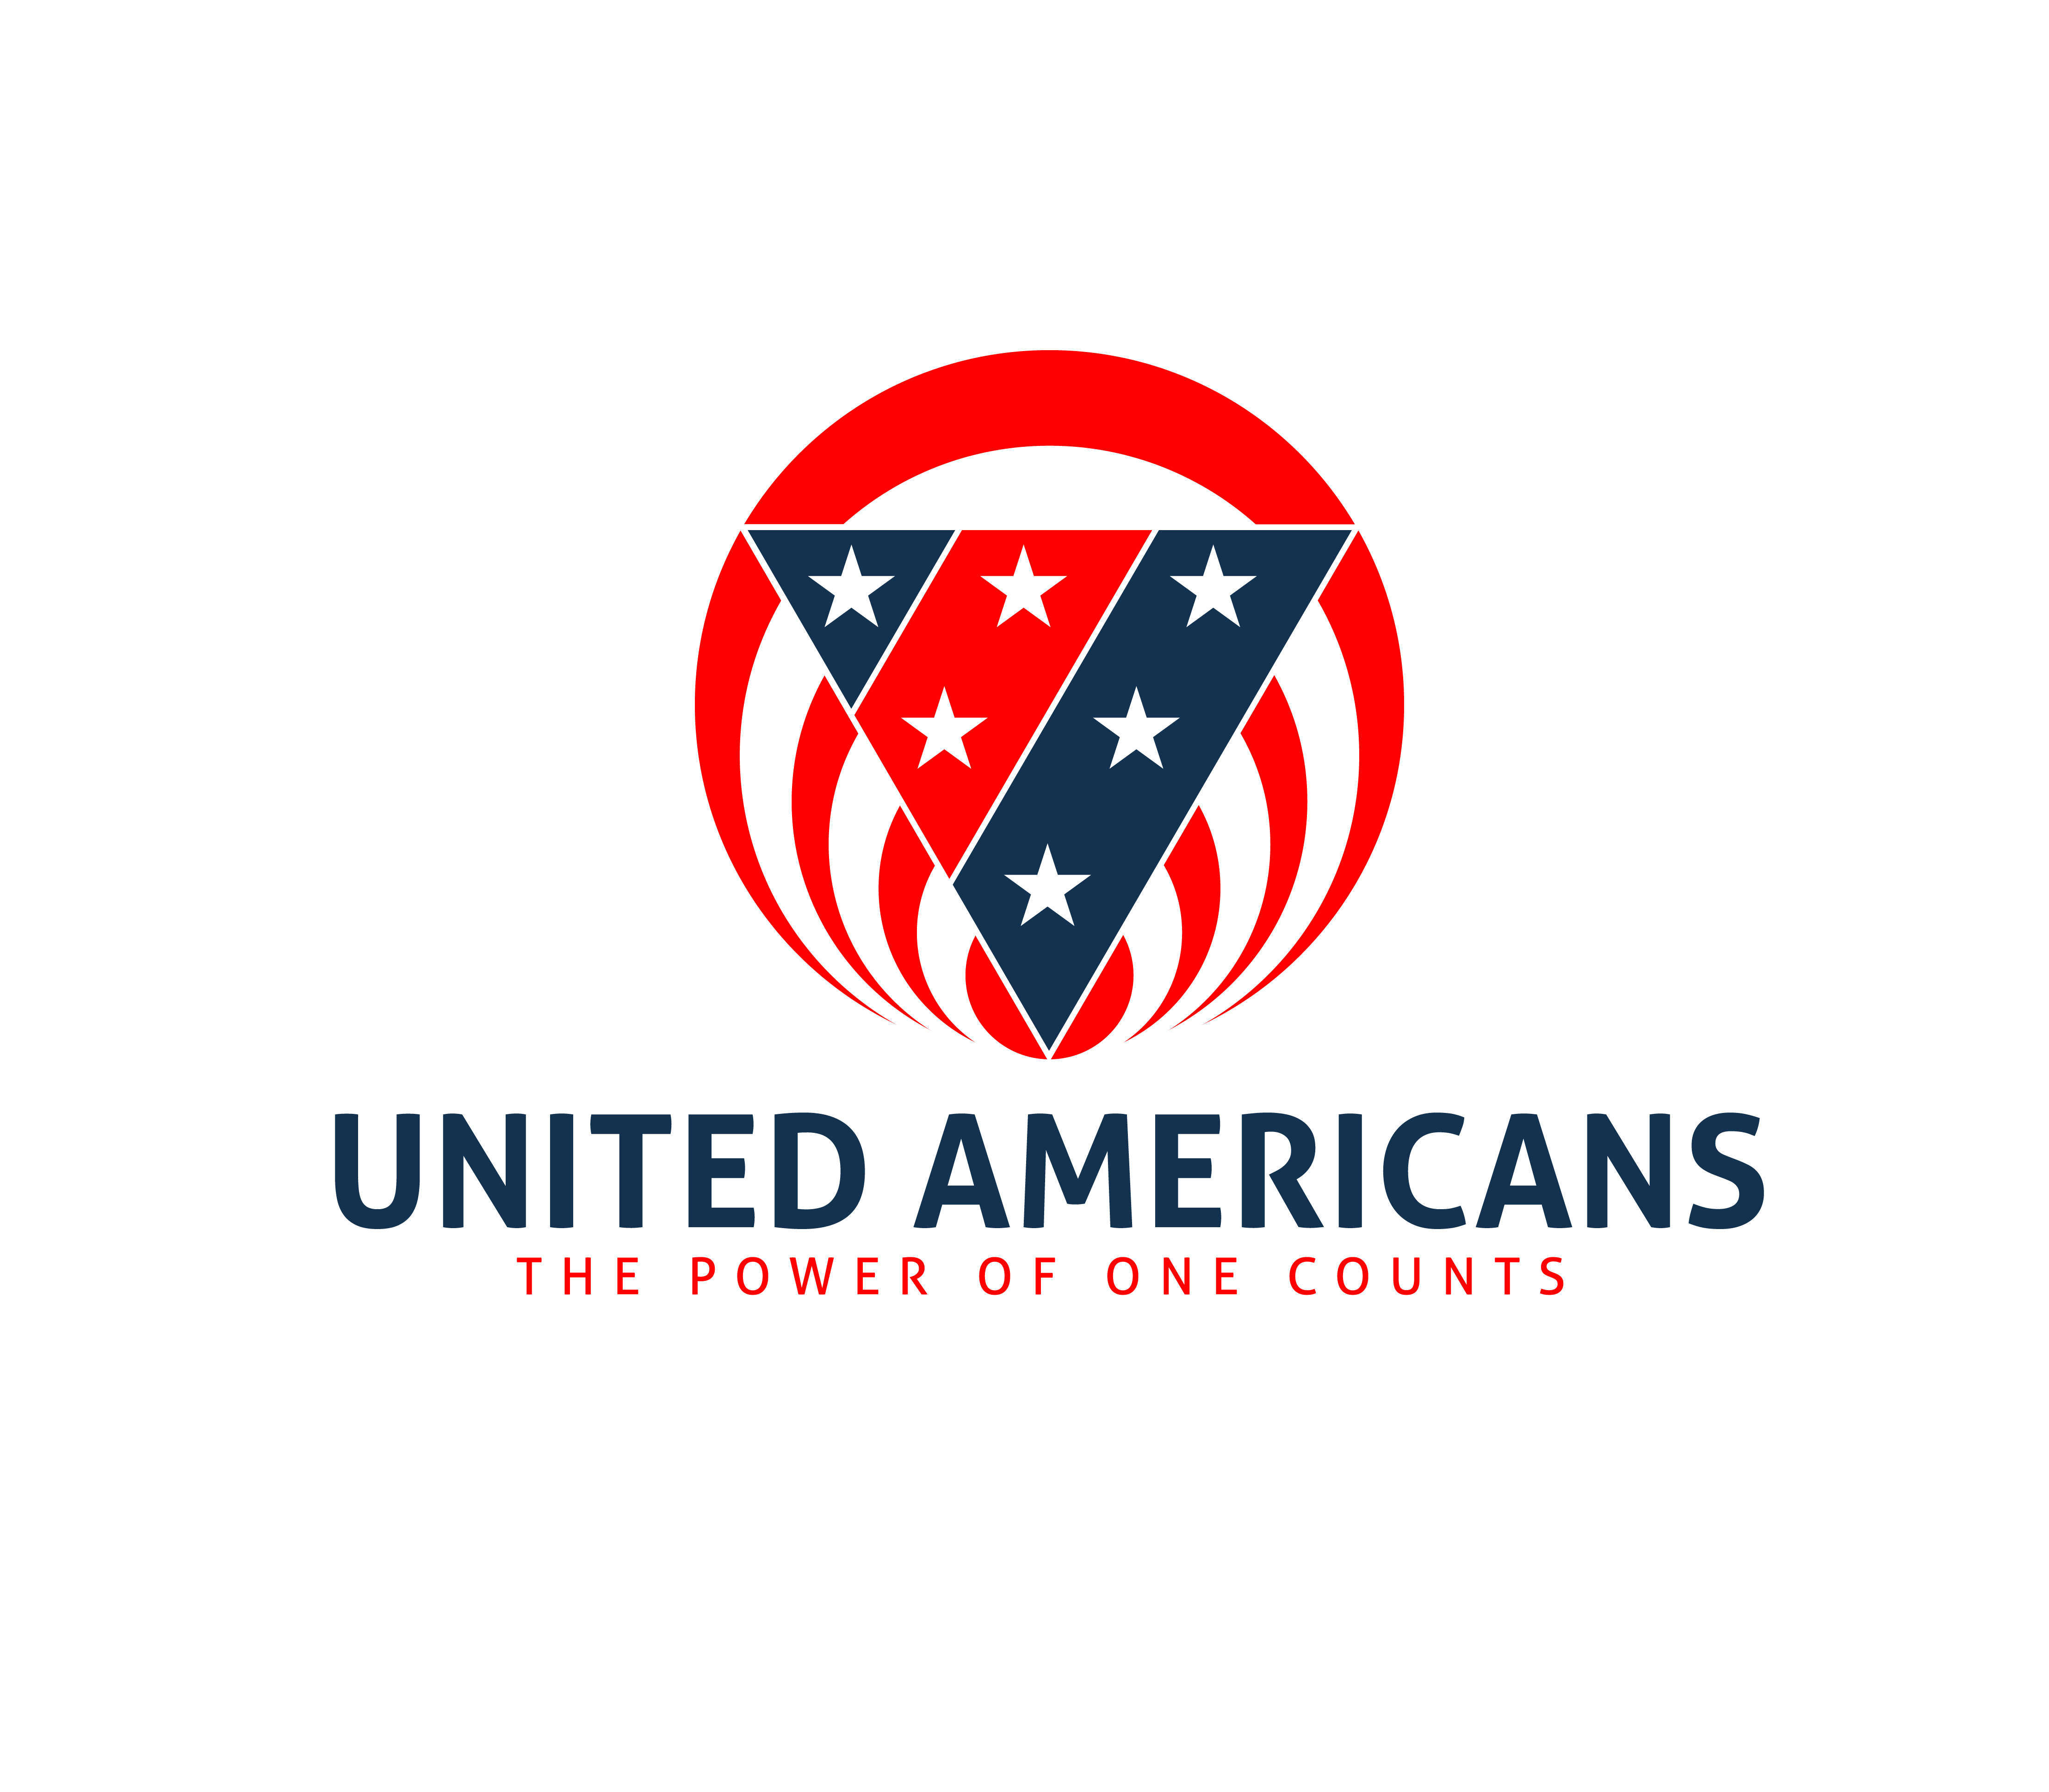 Logo Design by 3draw - Entry No. 142 in the Logo Design Contest Creative Logo Design for United Americans.